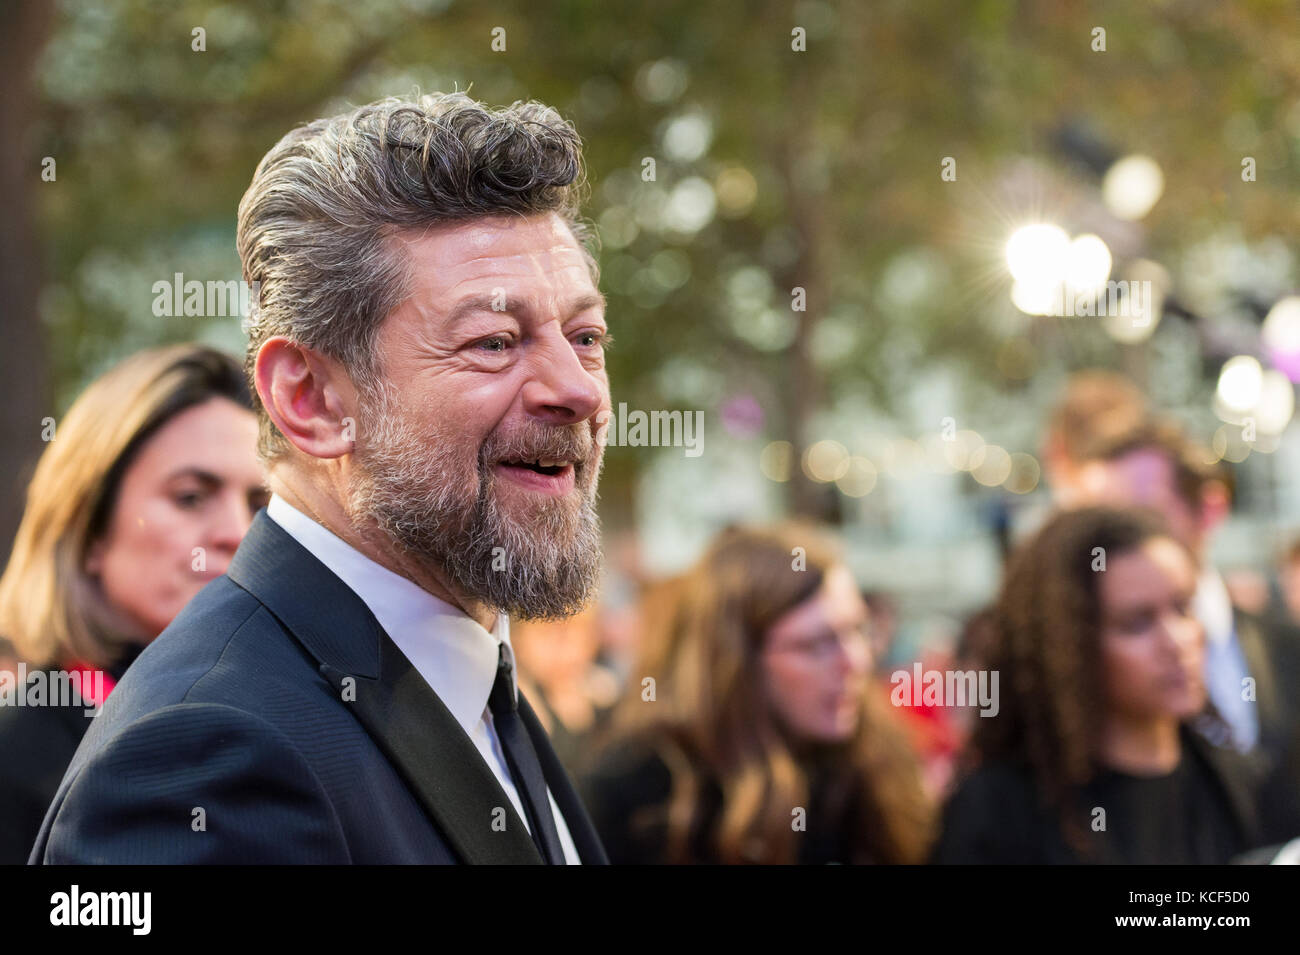 London, UK. 4th October 2017. Andy Serkis attends the UK film premiere of Breathe at Odeon Leicester Square during Stock Photo